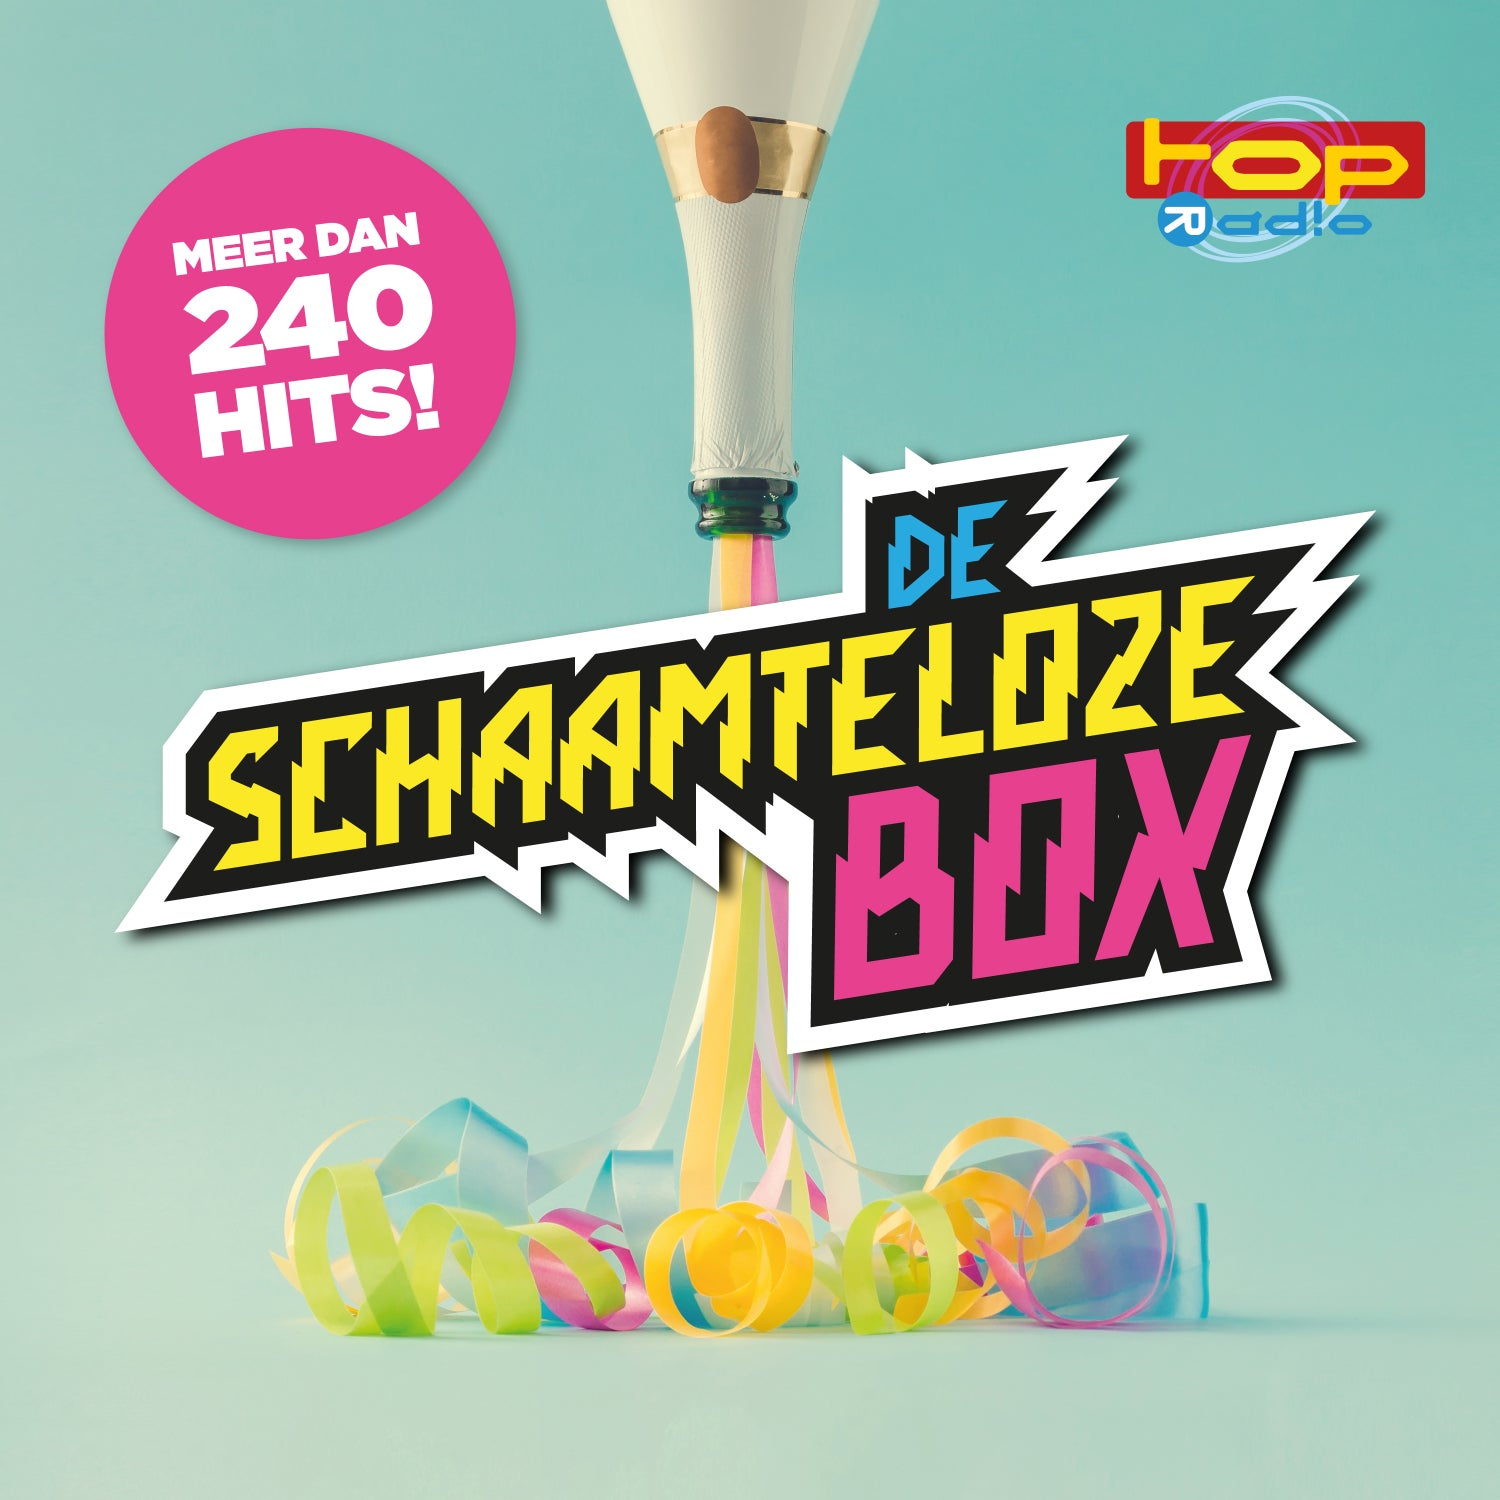 Image of DE SCHAAMTELOZE BOX